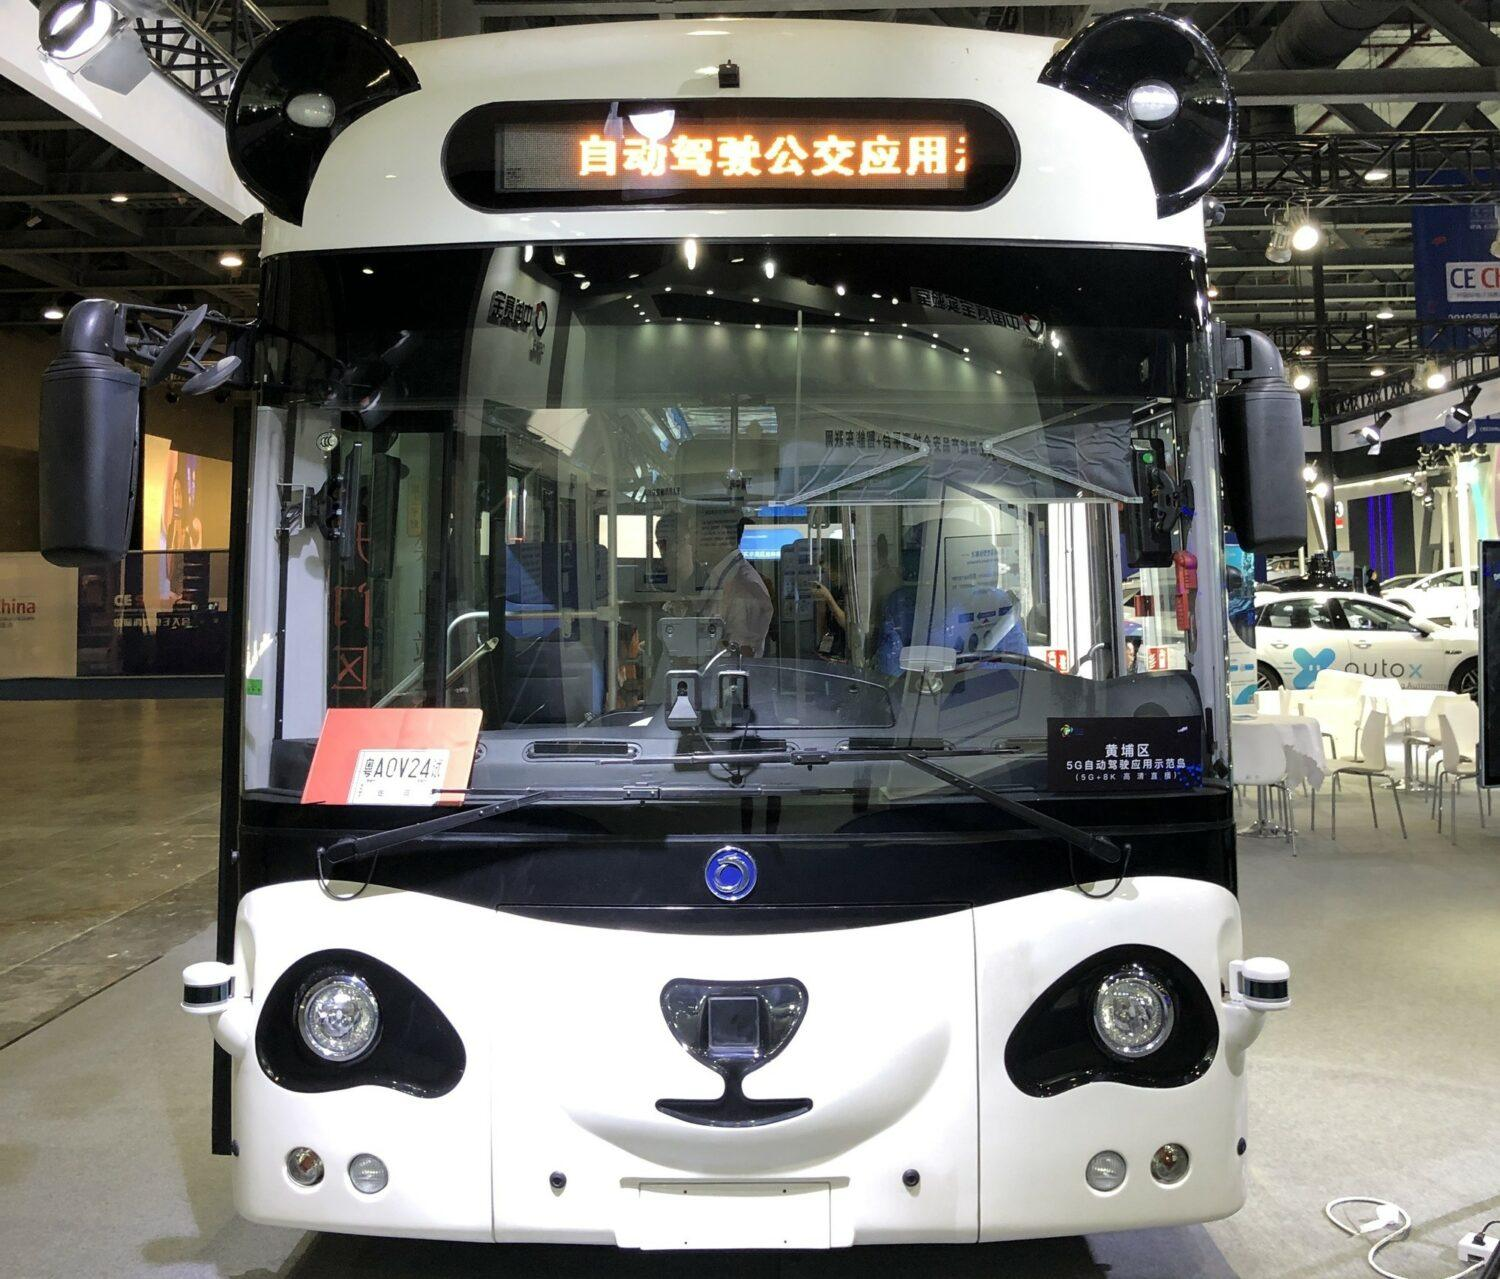 CE China bus électrique autonome DeepBlue